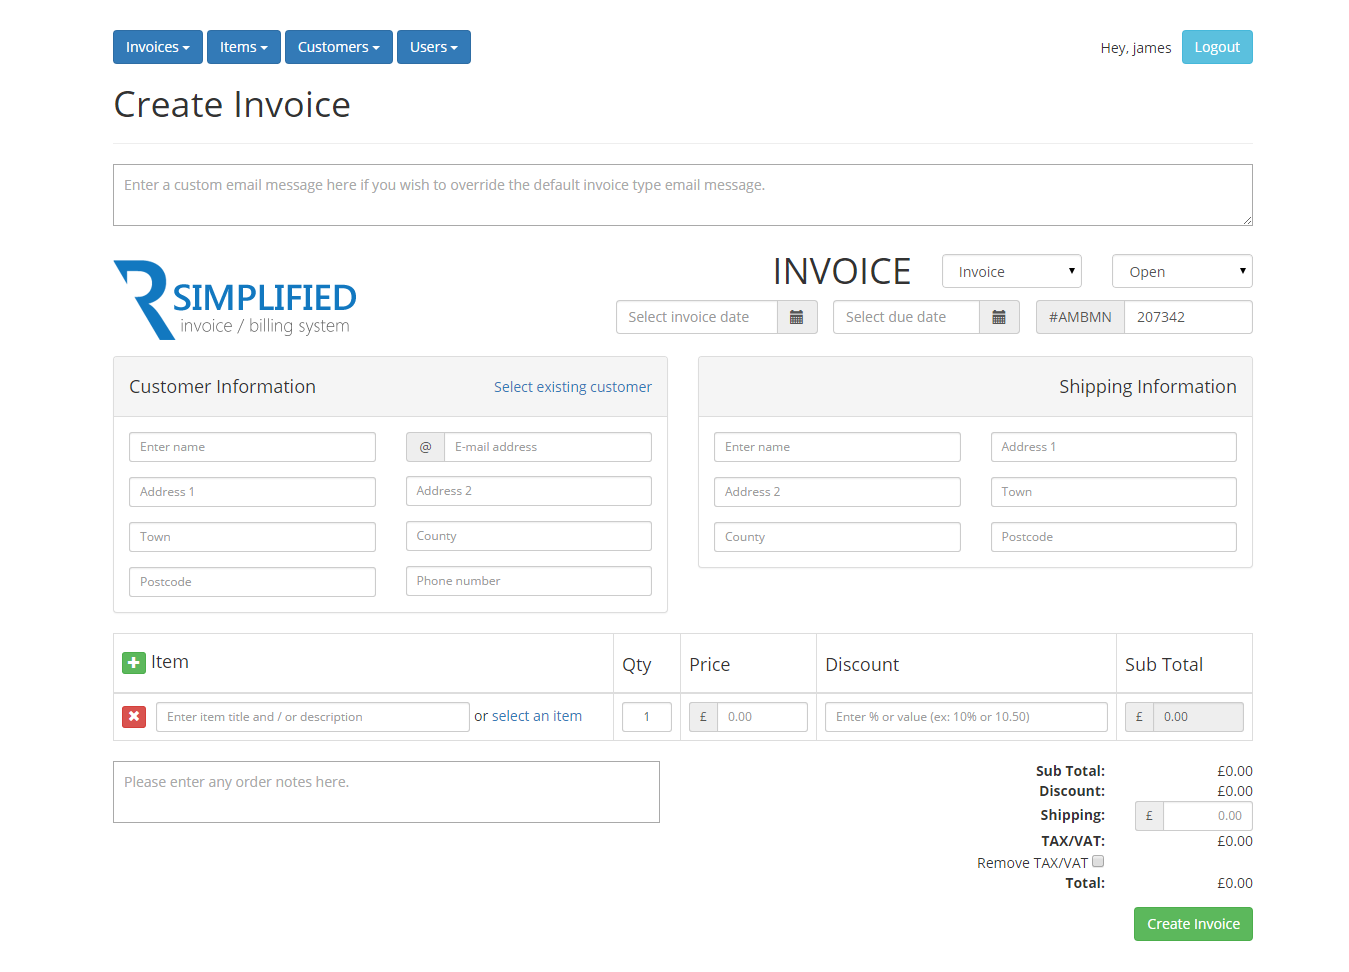 Breakupus  Unique Simplified Php Invoice  Billing System By Rebootdigitaluk  With Outstanding  Createinvoicepng  With Agreeable Sales Invoice Template Excel Free Download Also Template For Invoice Uk In Addition Easy Invoicing Software And Writing Invoices As Well As Free Invoicing Service Additionally Builders Invoice Template From Codecanyonnet With Breakupus  Outstanding Simplified Php Invoice  Billing System By Rebootdigitaluk  With Agreeable  Createinvoicepng  And Unique Sales Invoice Template Excel Free Download Also Template For Invoice Uk In Addition Easy Invoicing Software From Codecanyonnet